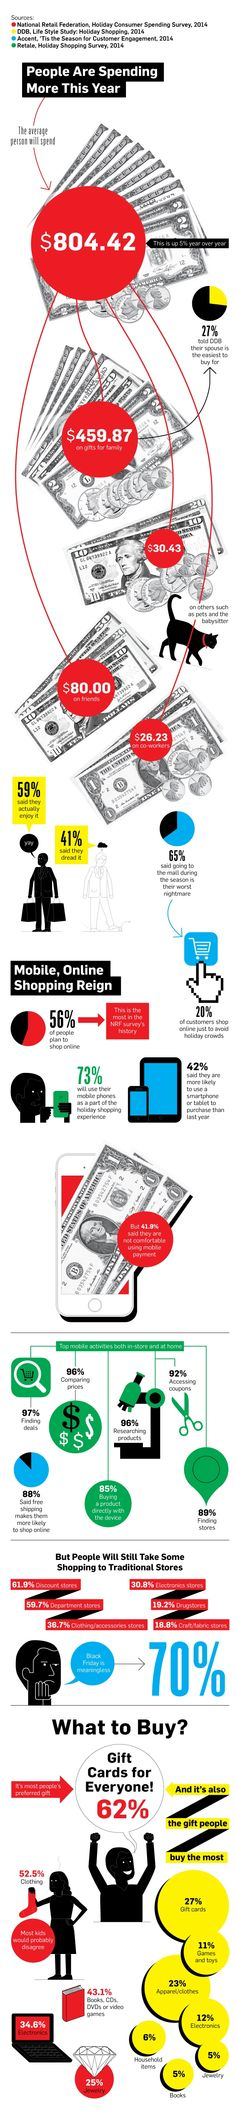 How Are Consumers Spending And Using #Mobile This 2014 Holiday Season? #infographic